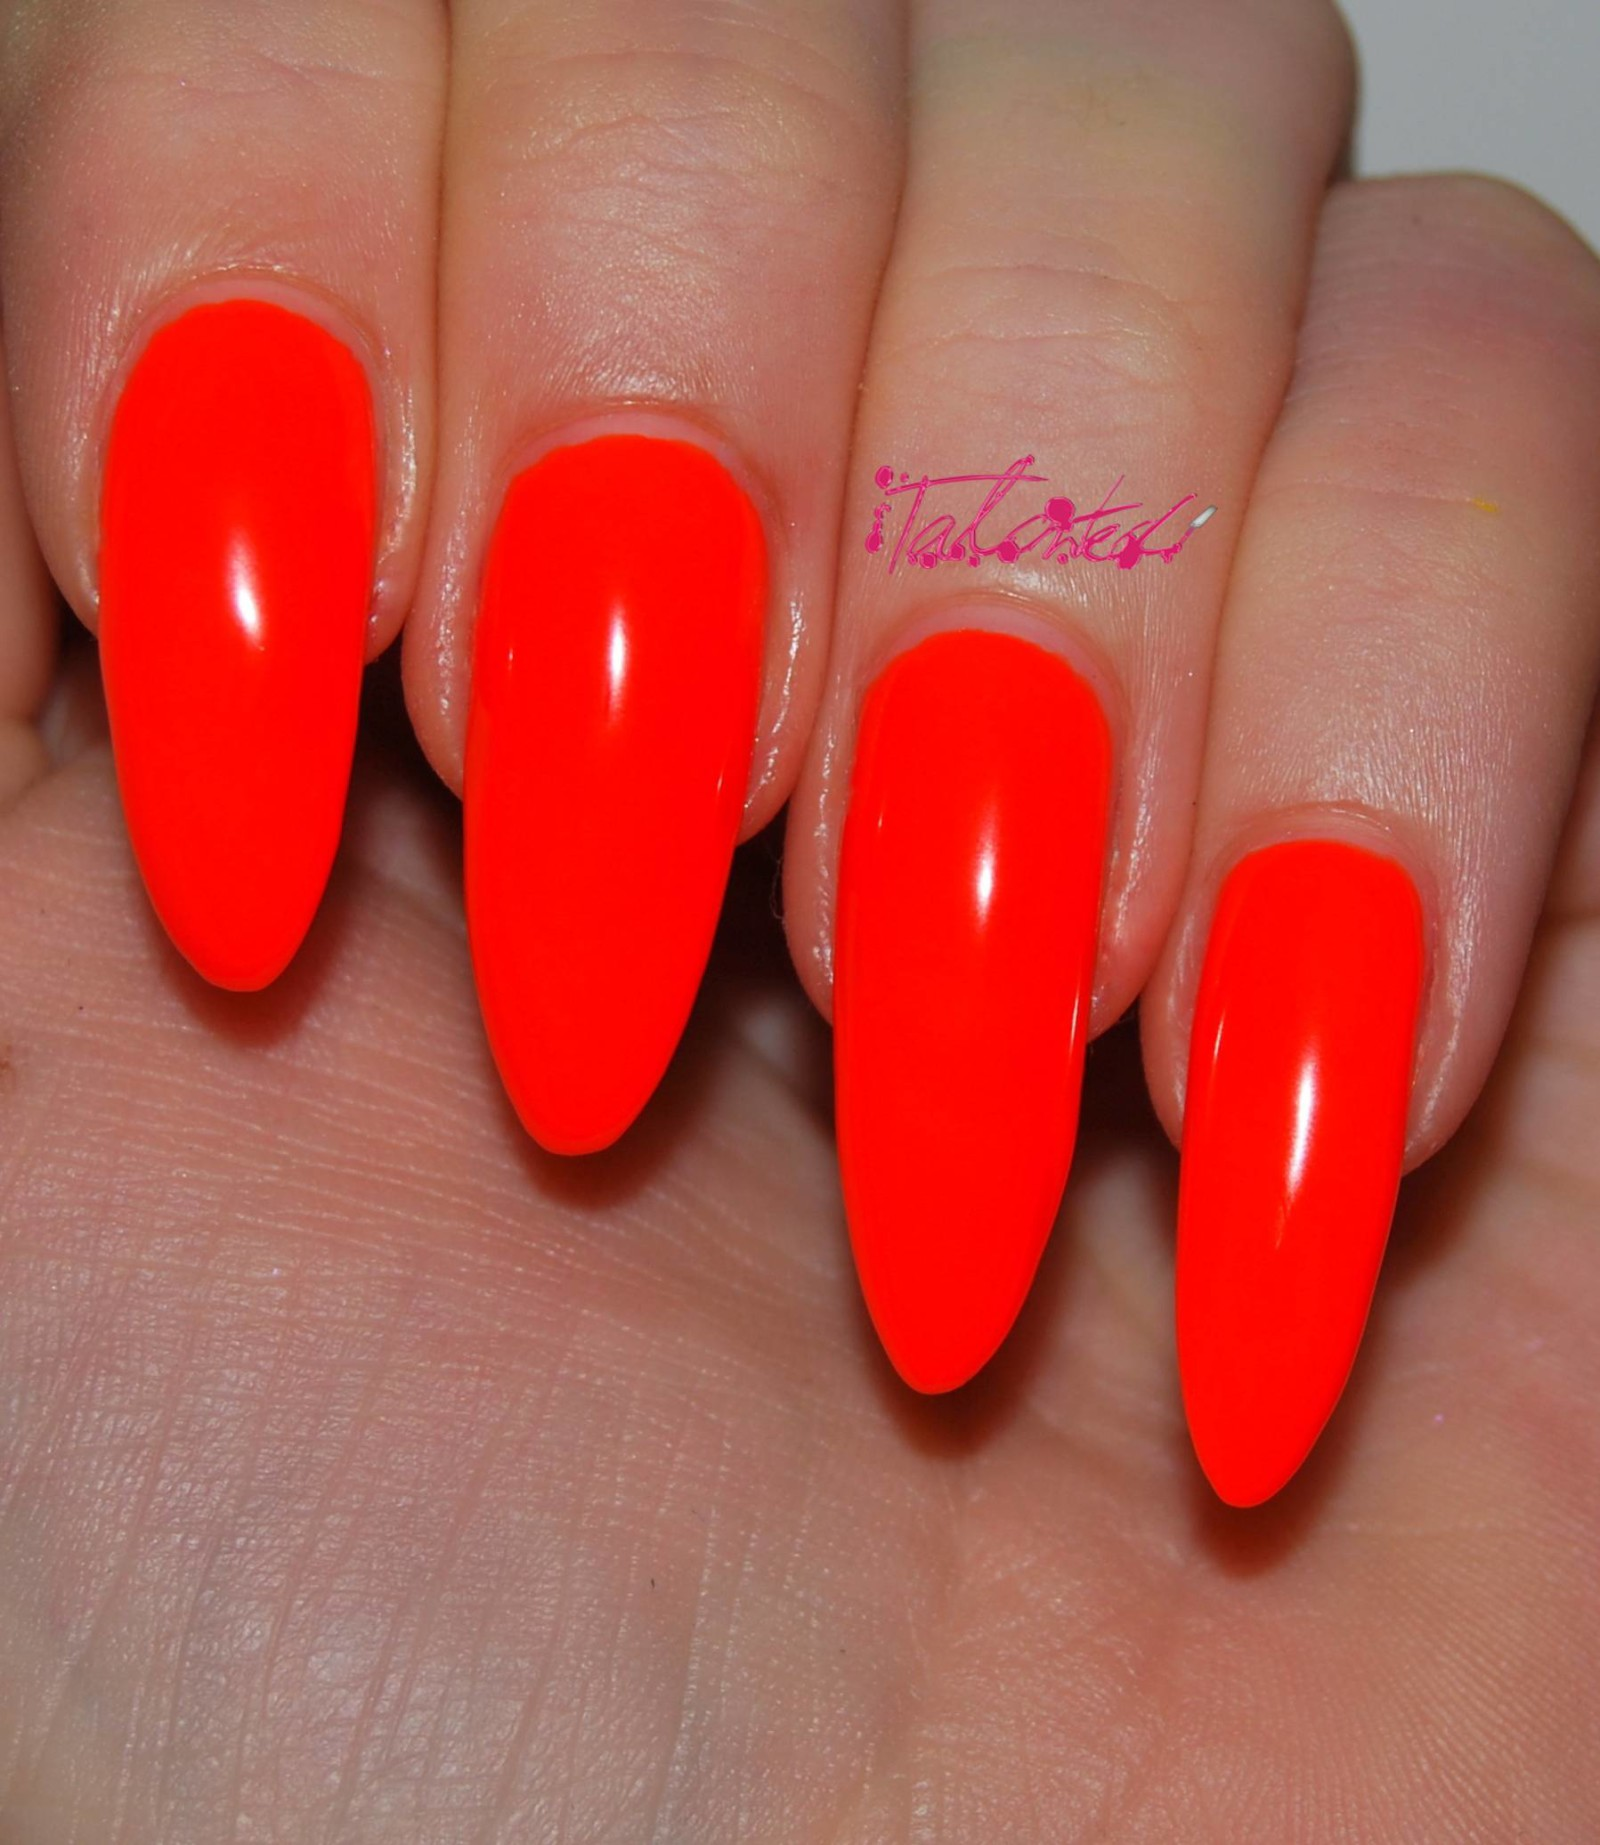 Models Own Fluoro Orange